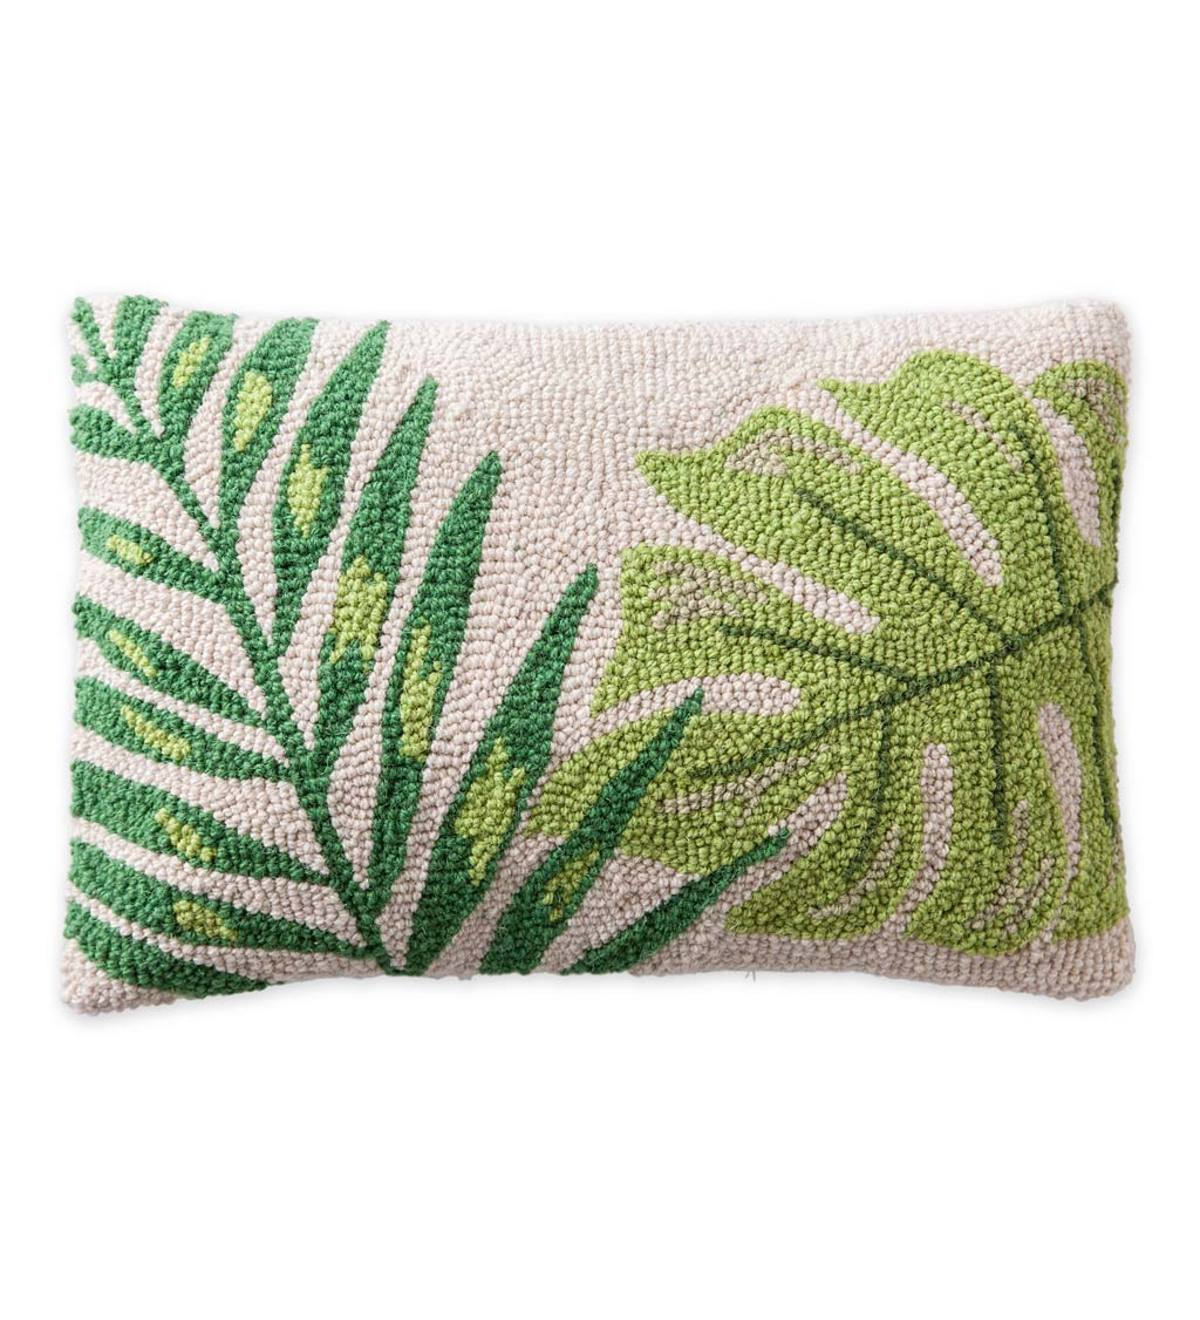 Hand Hooked Tropical Leaf Pillows - 18x12